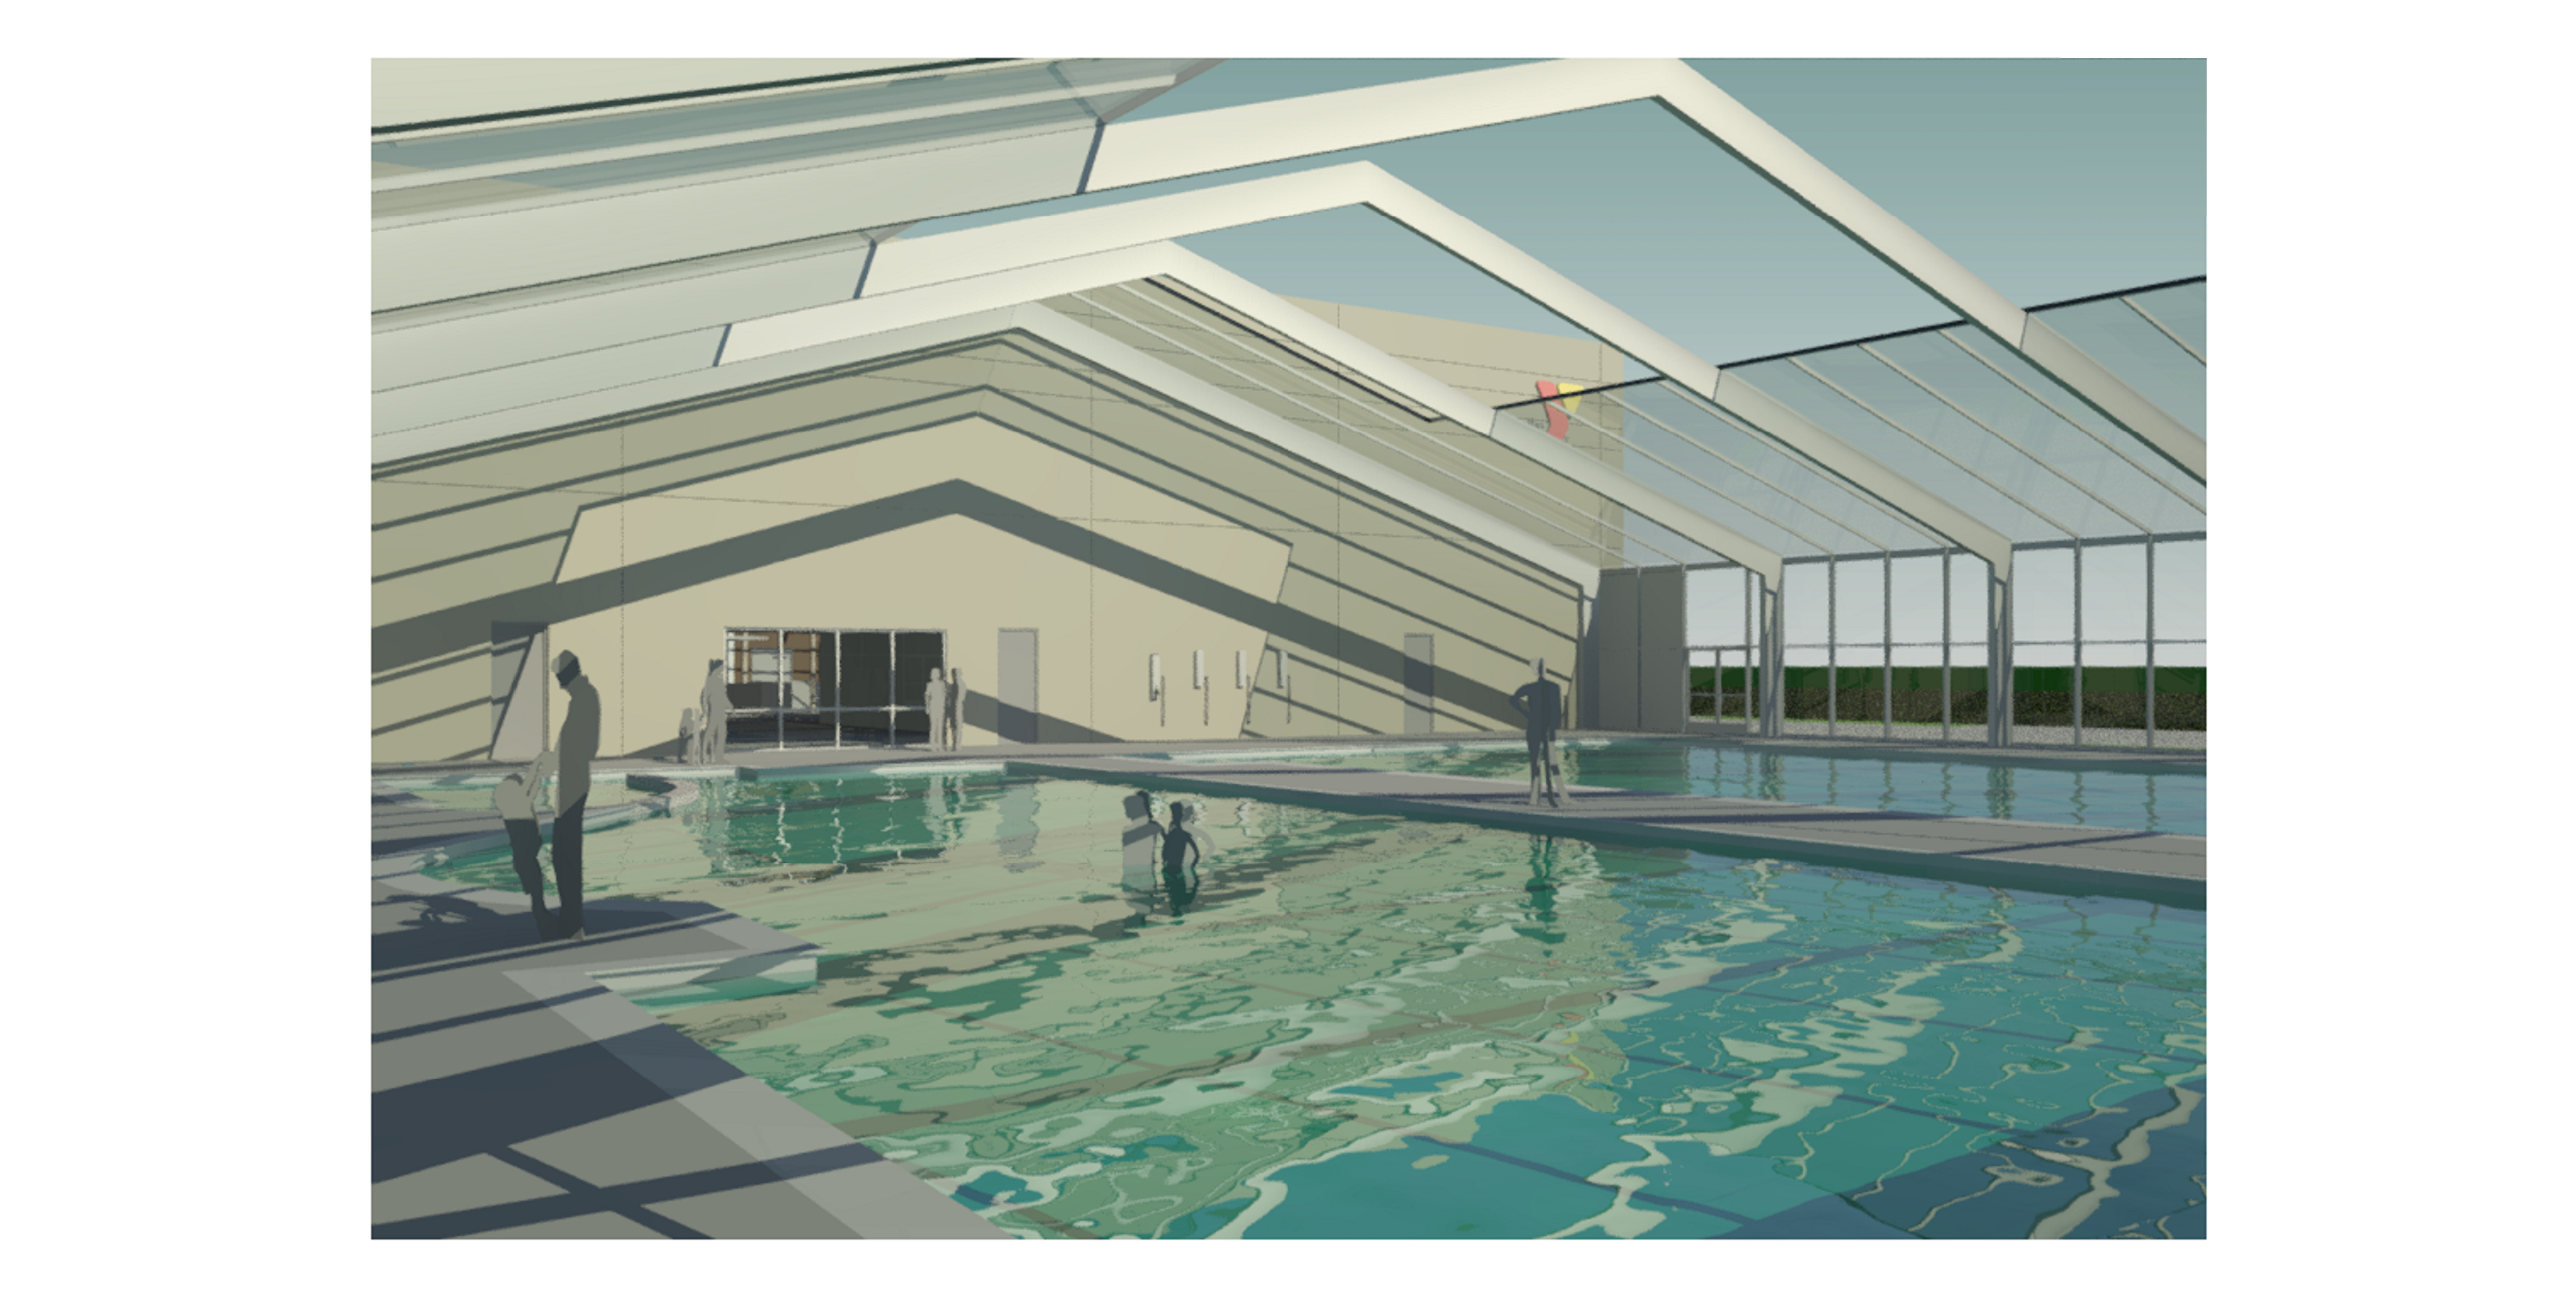 038jackie Robinson - pool view no signage